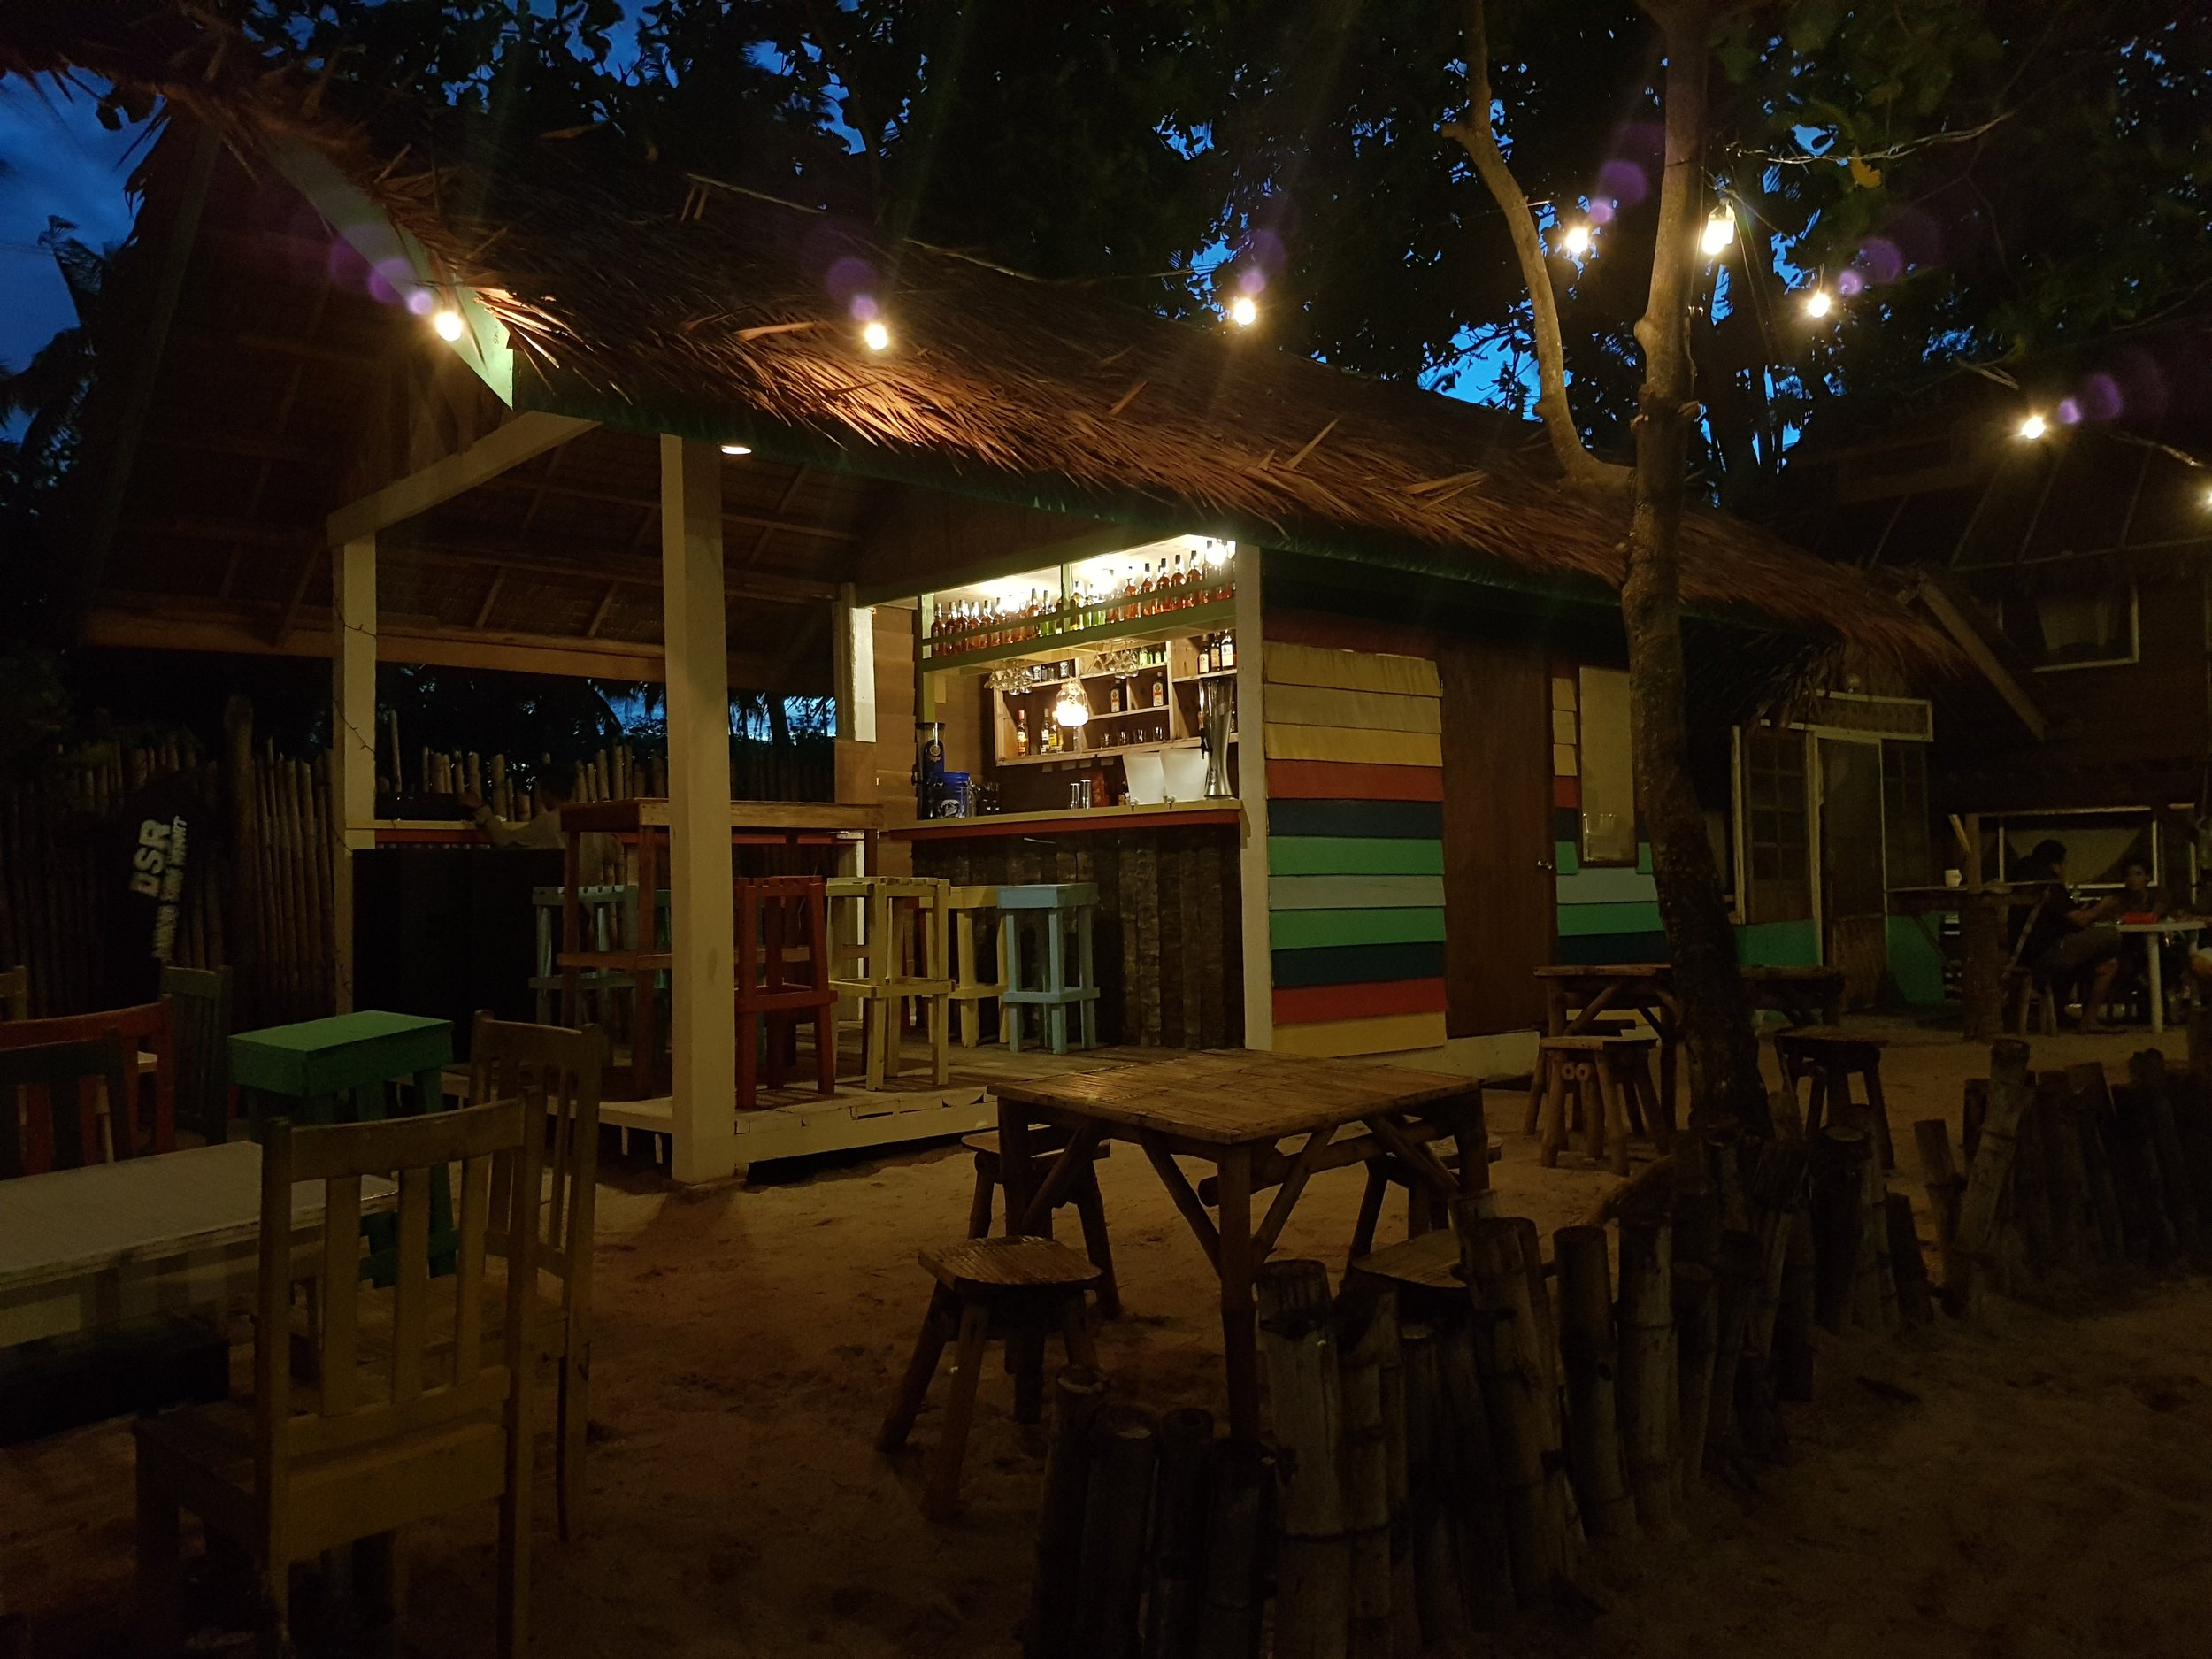 The calm before the party. This night shot of Surf Shack's al fresco dining area is definitely so inviting.